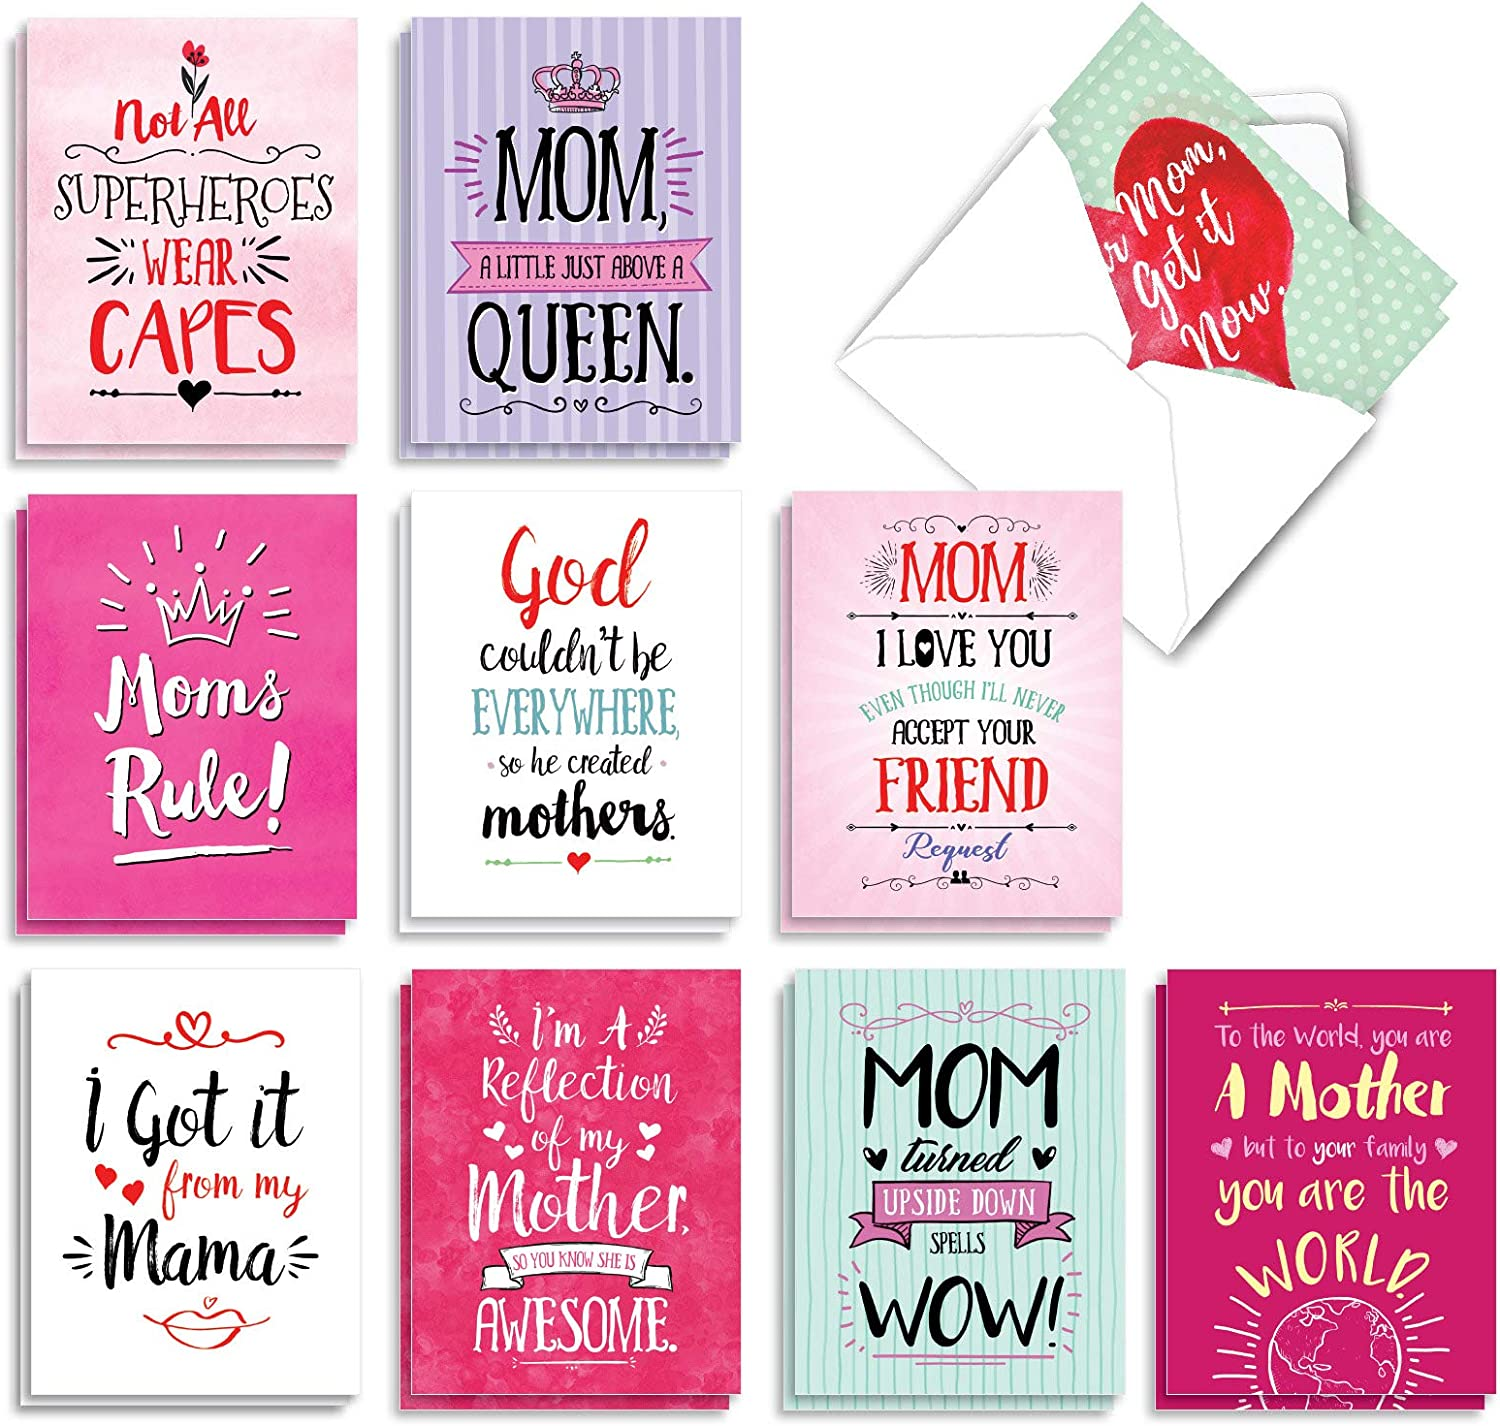 Memories of Motherhood AC6783MDG-B1x10 10 Assorted Mothers Day Cards with Envelopes Women Boxed Funny Cards for Mom Stepmom NobleWorks